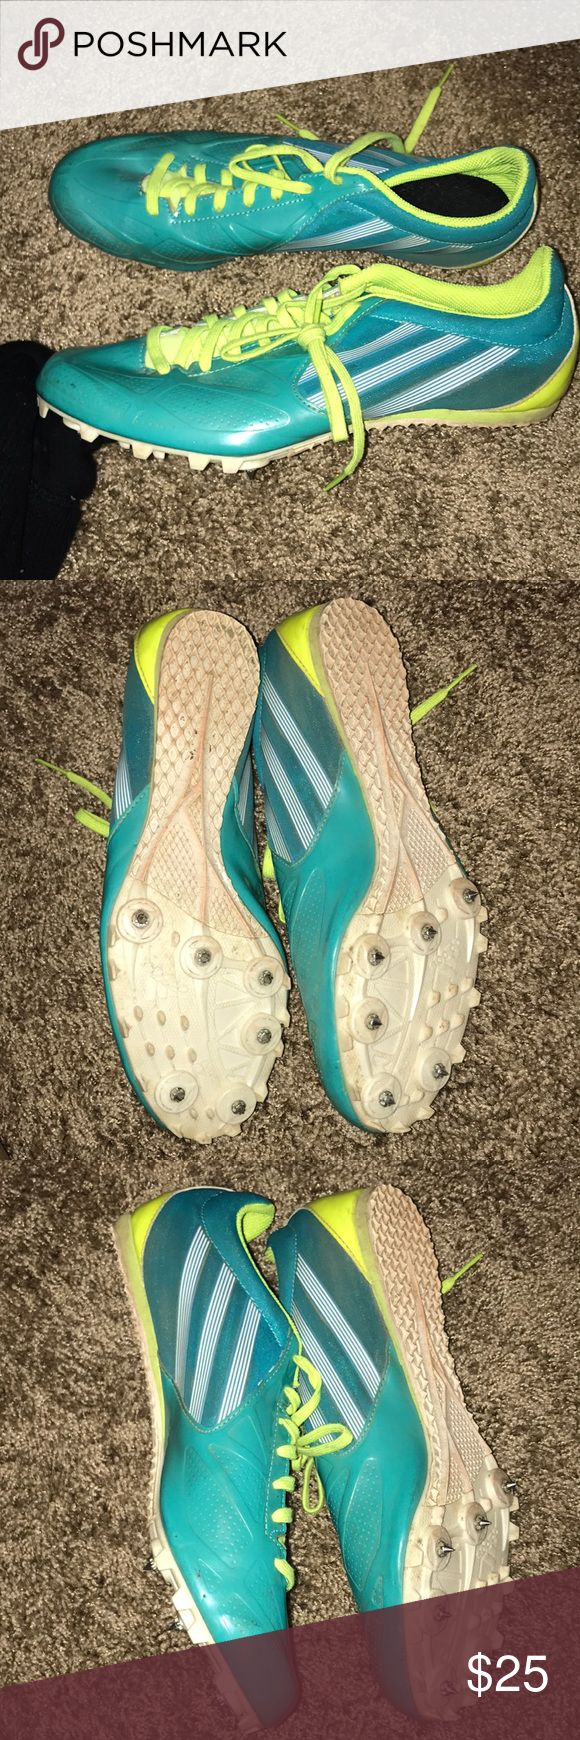 Adidas Track Spikes Used these for two track seasons (meets only). Very comfy and lightweight. Size 9 but fits like a glove. In great shape just a little bit dirty! I'm sure most of the dirt would come off with a little scrub. adidas Shoes Athletic Shoes